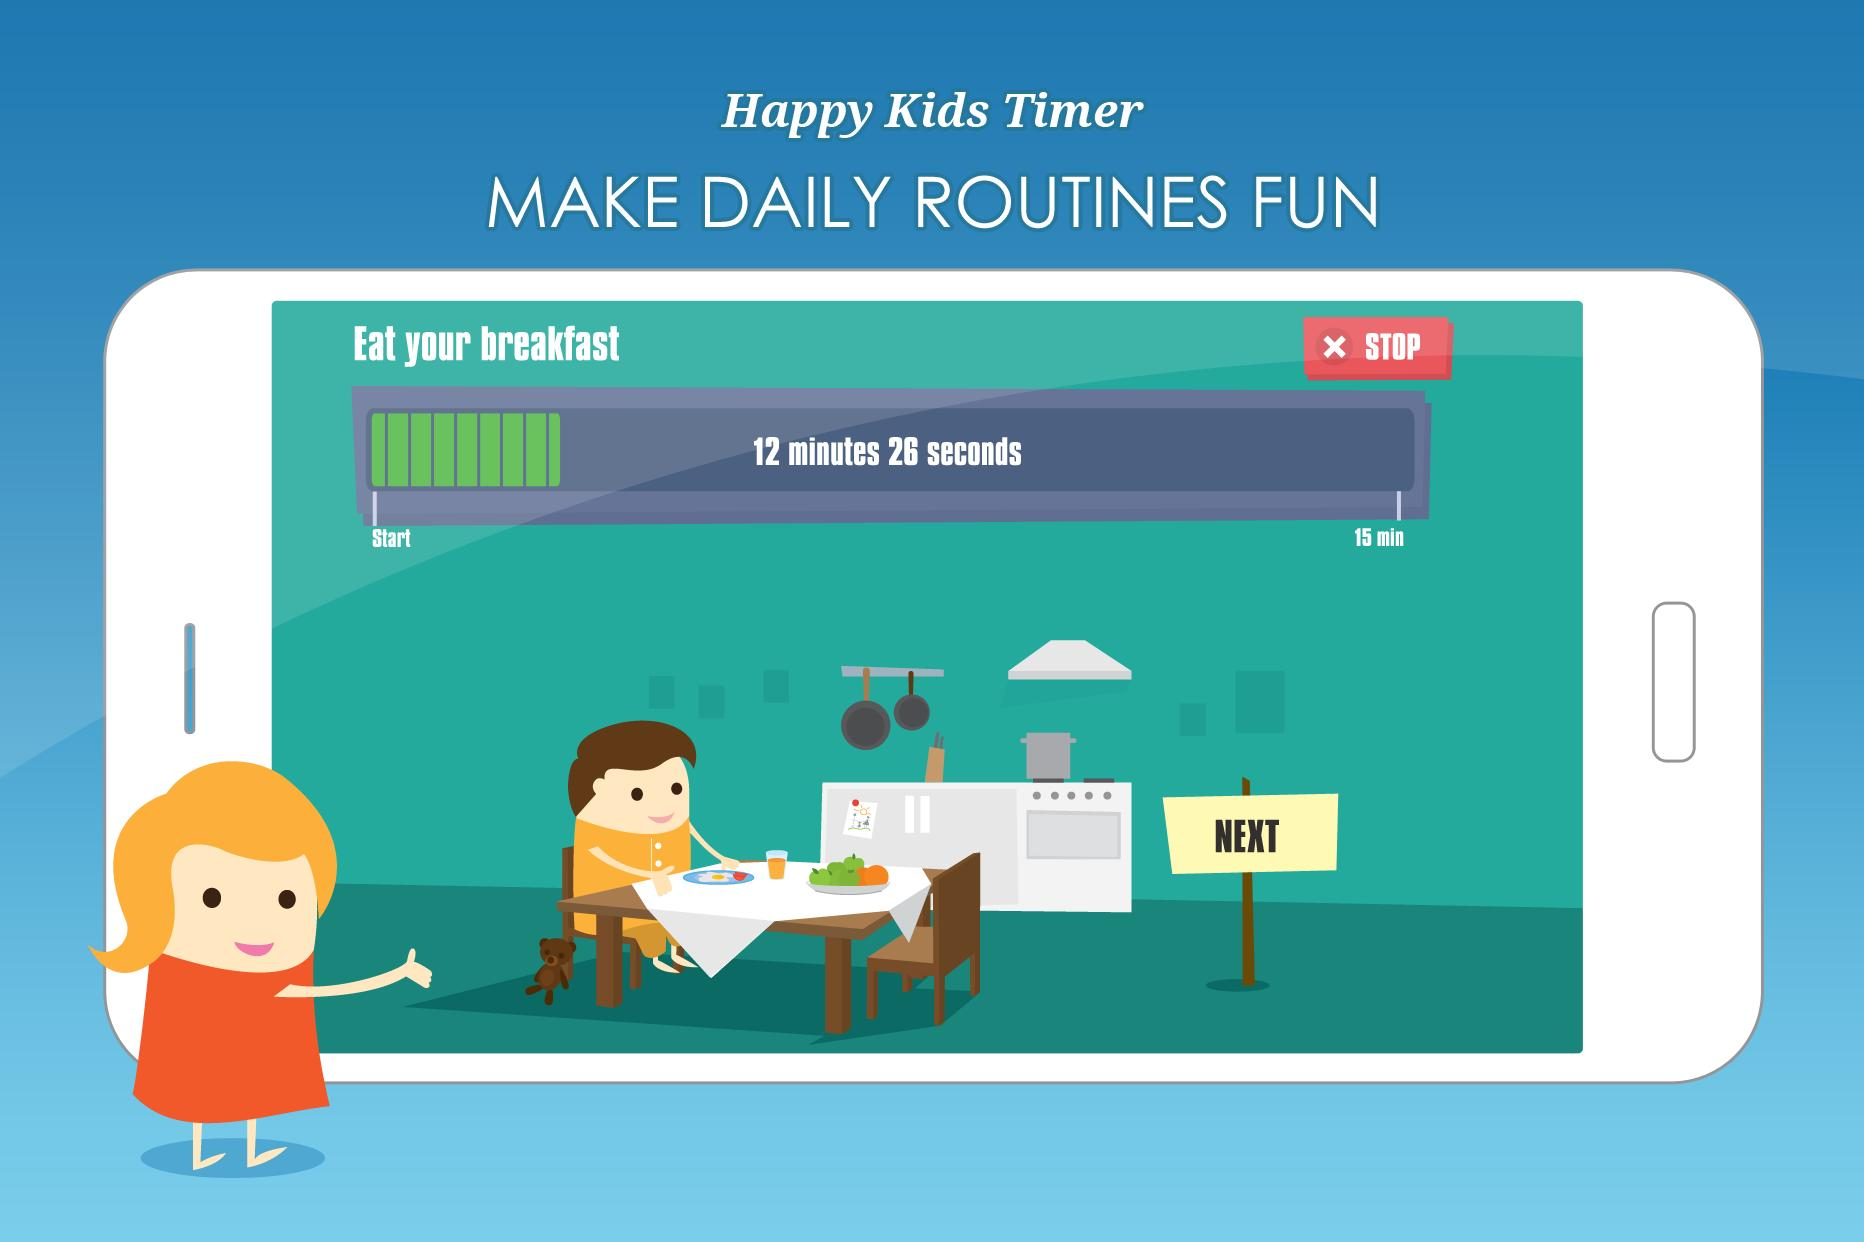 15 Minute Timer For Kids